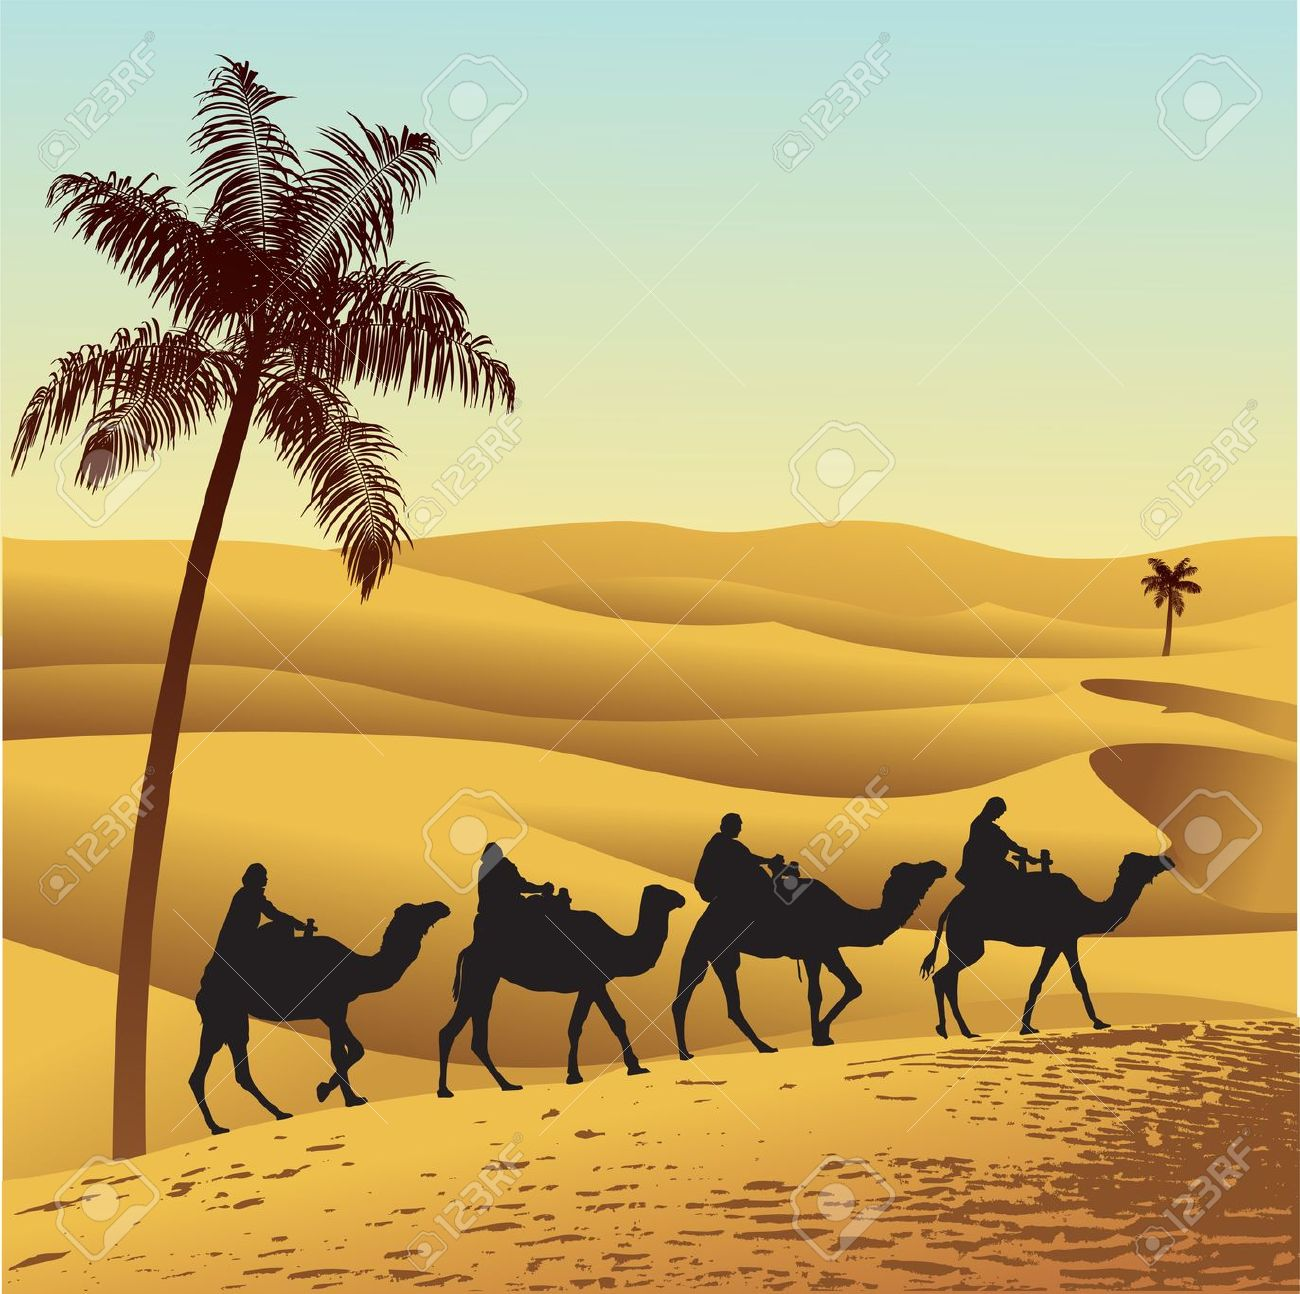 Arabian Desert clipart #7, Download drawings